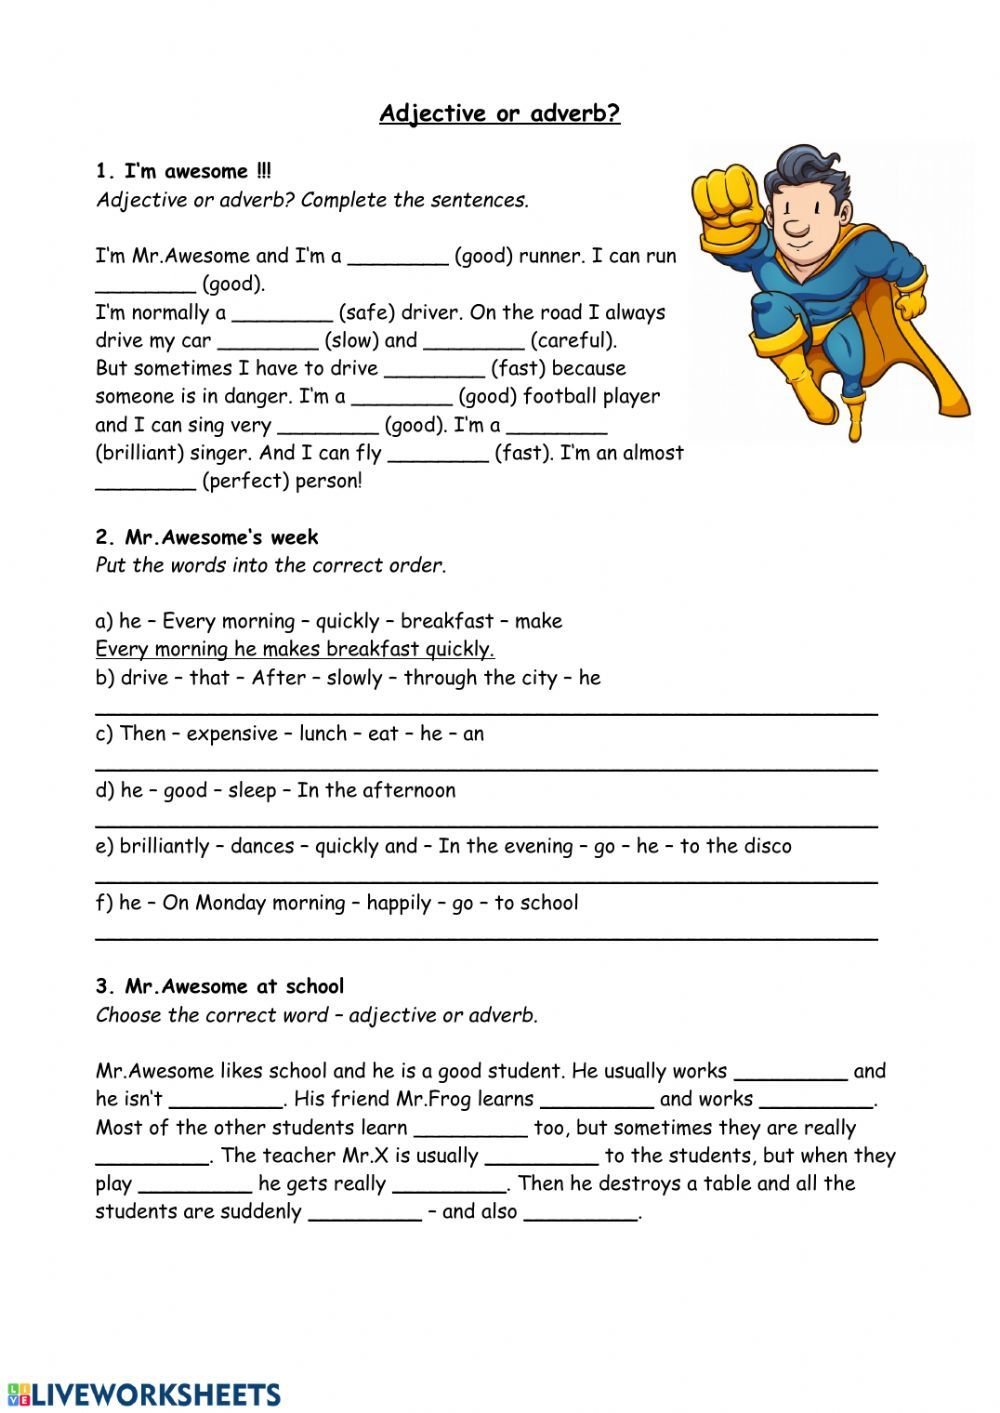 Adjective or adverb   Interactive worksheet   Adjectives, Adverbs ...